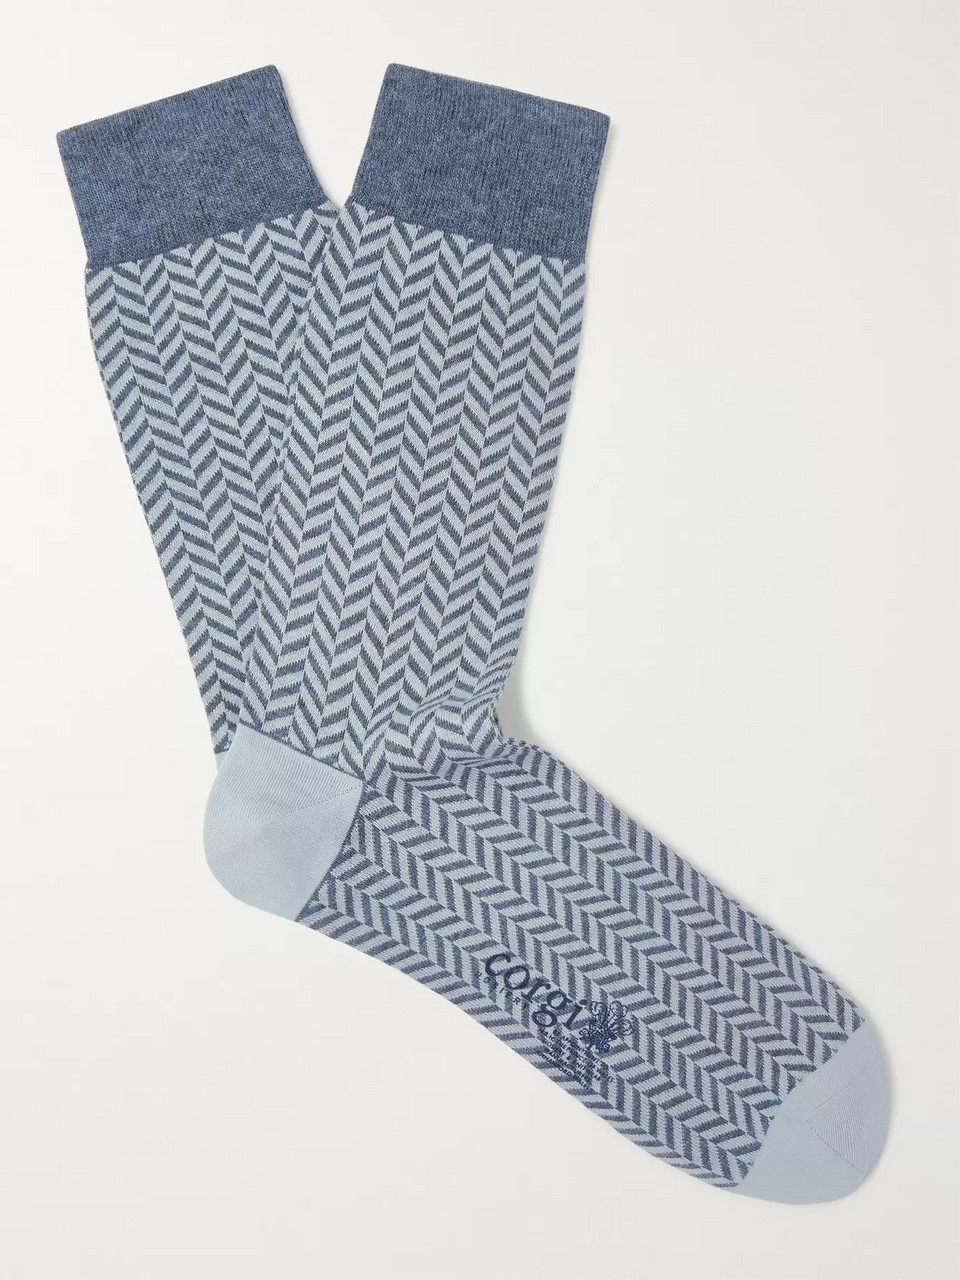 Kingsman Herringbone Cotton-Blend Socks